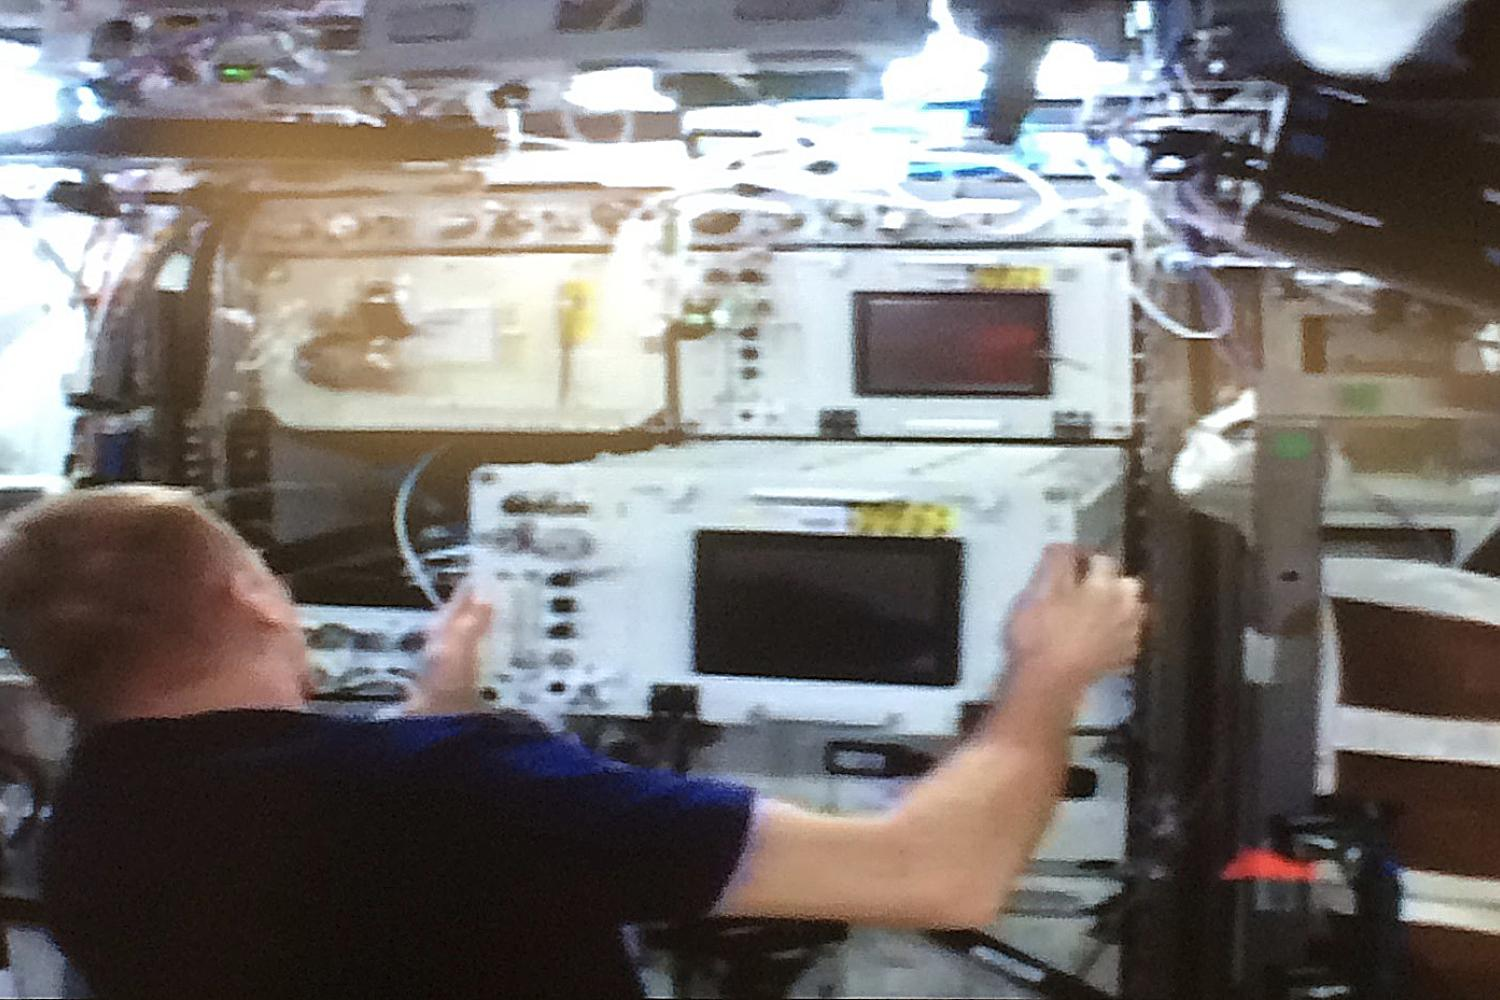 SABL being installed on the International Space Station